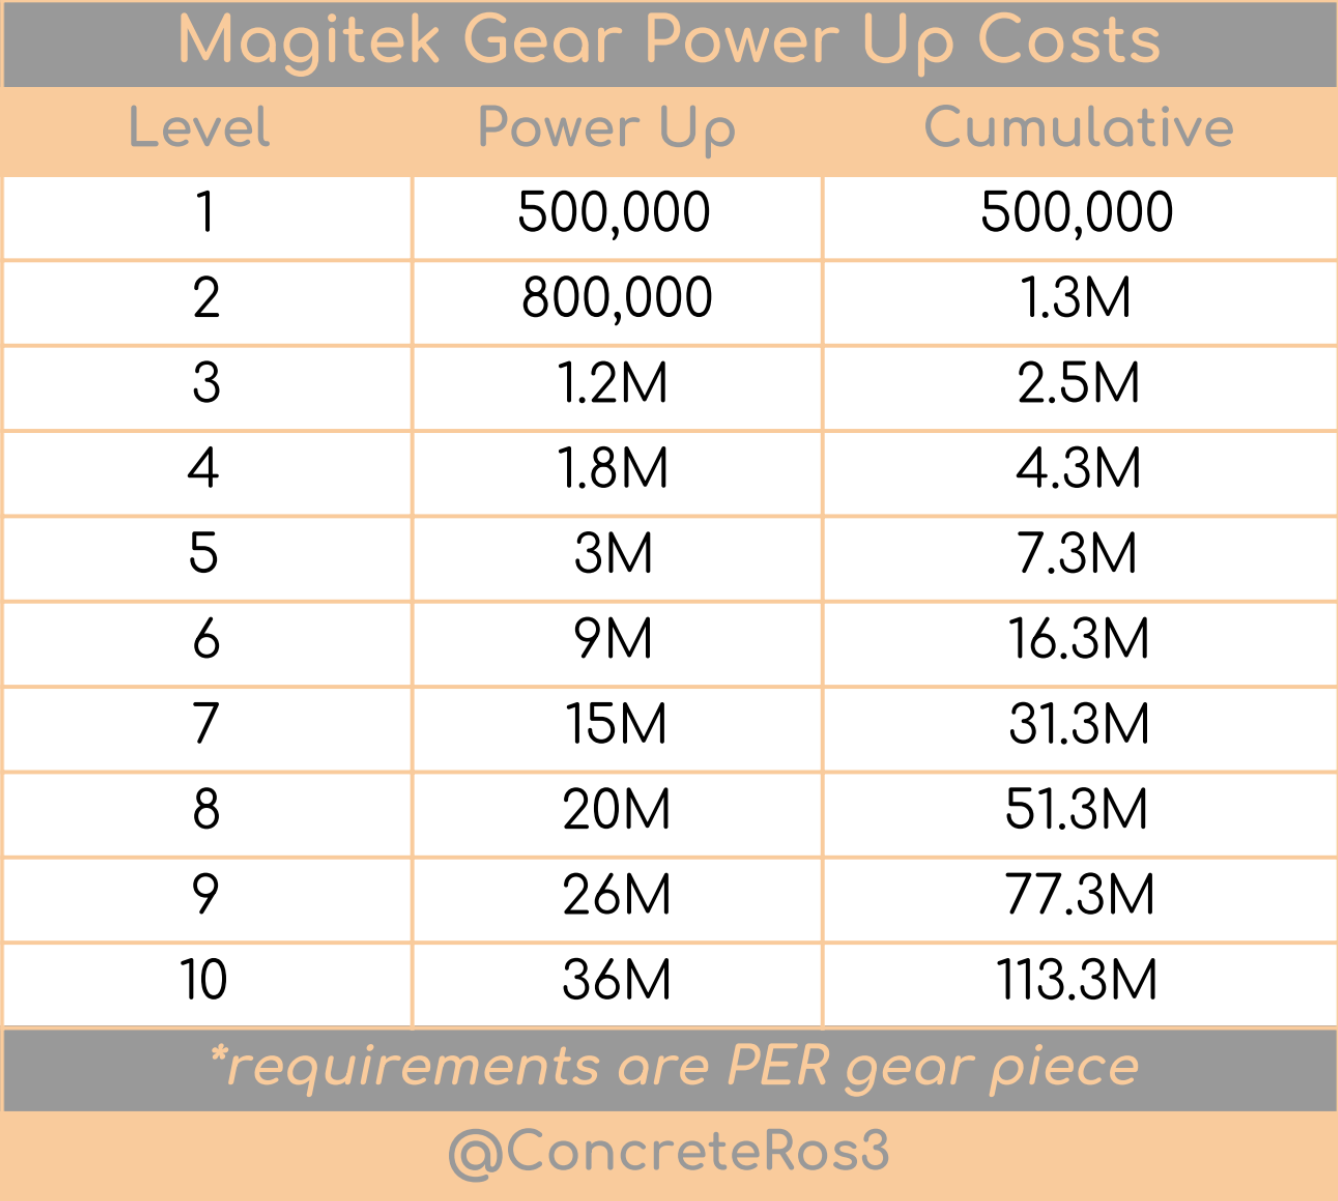 Power Up Cost